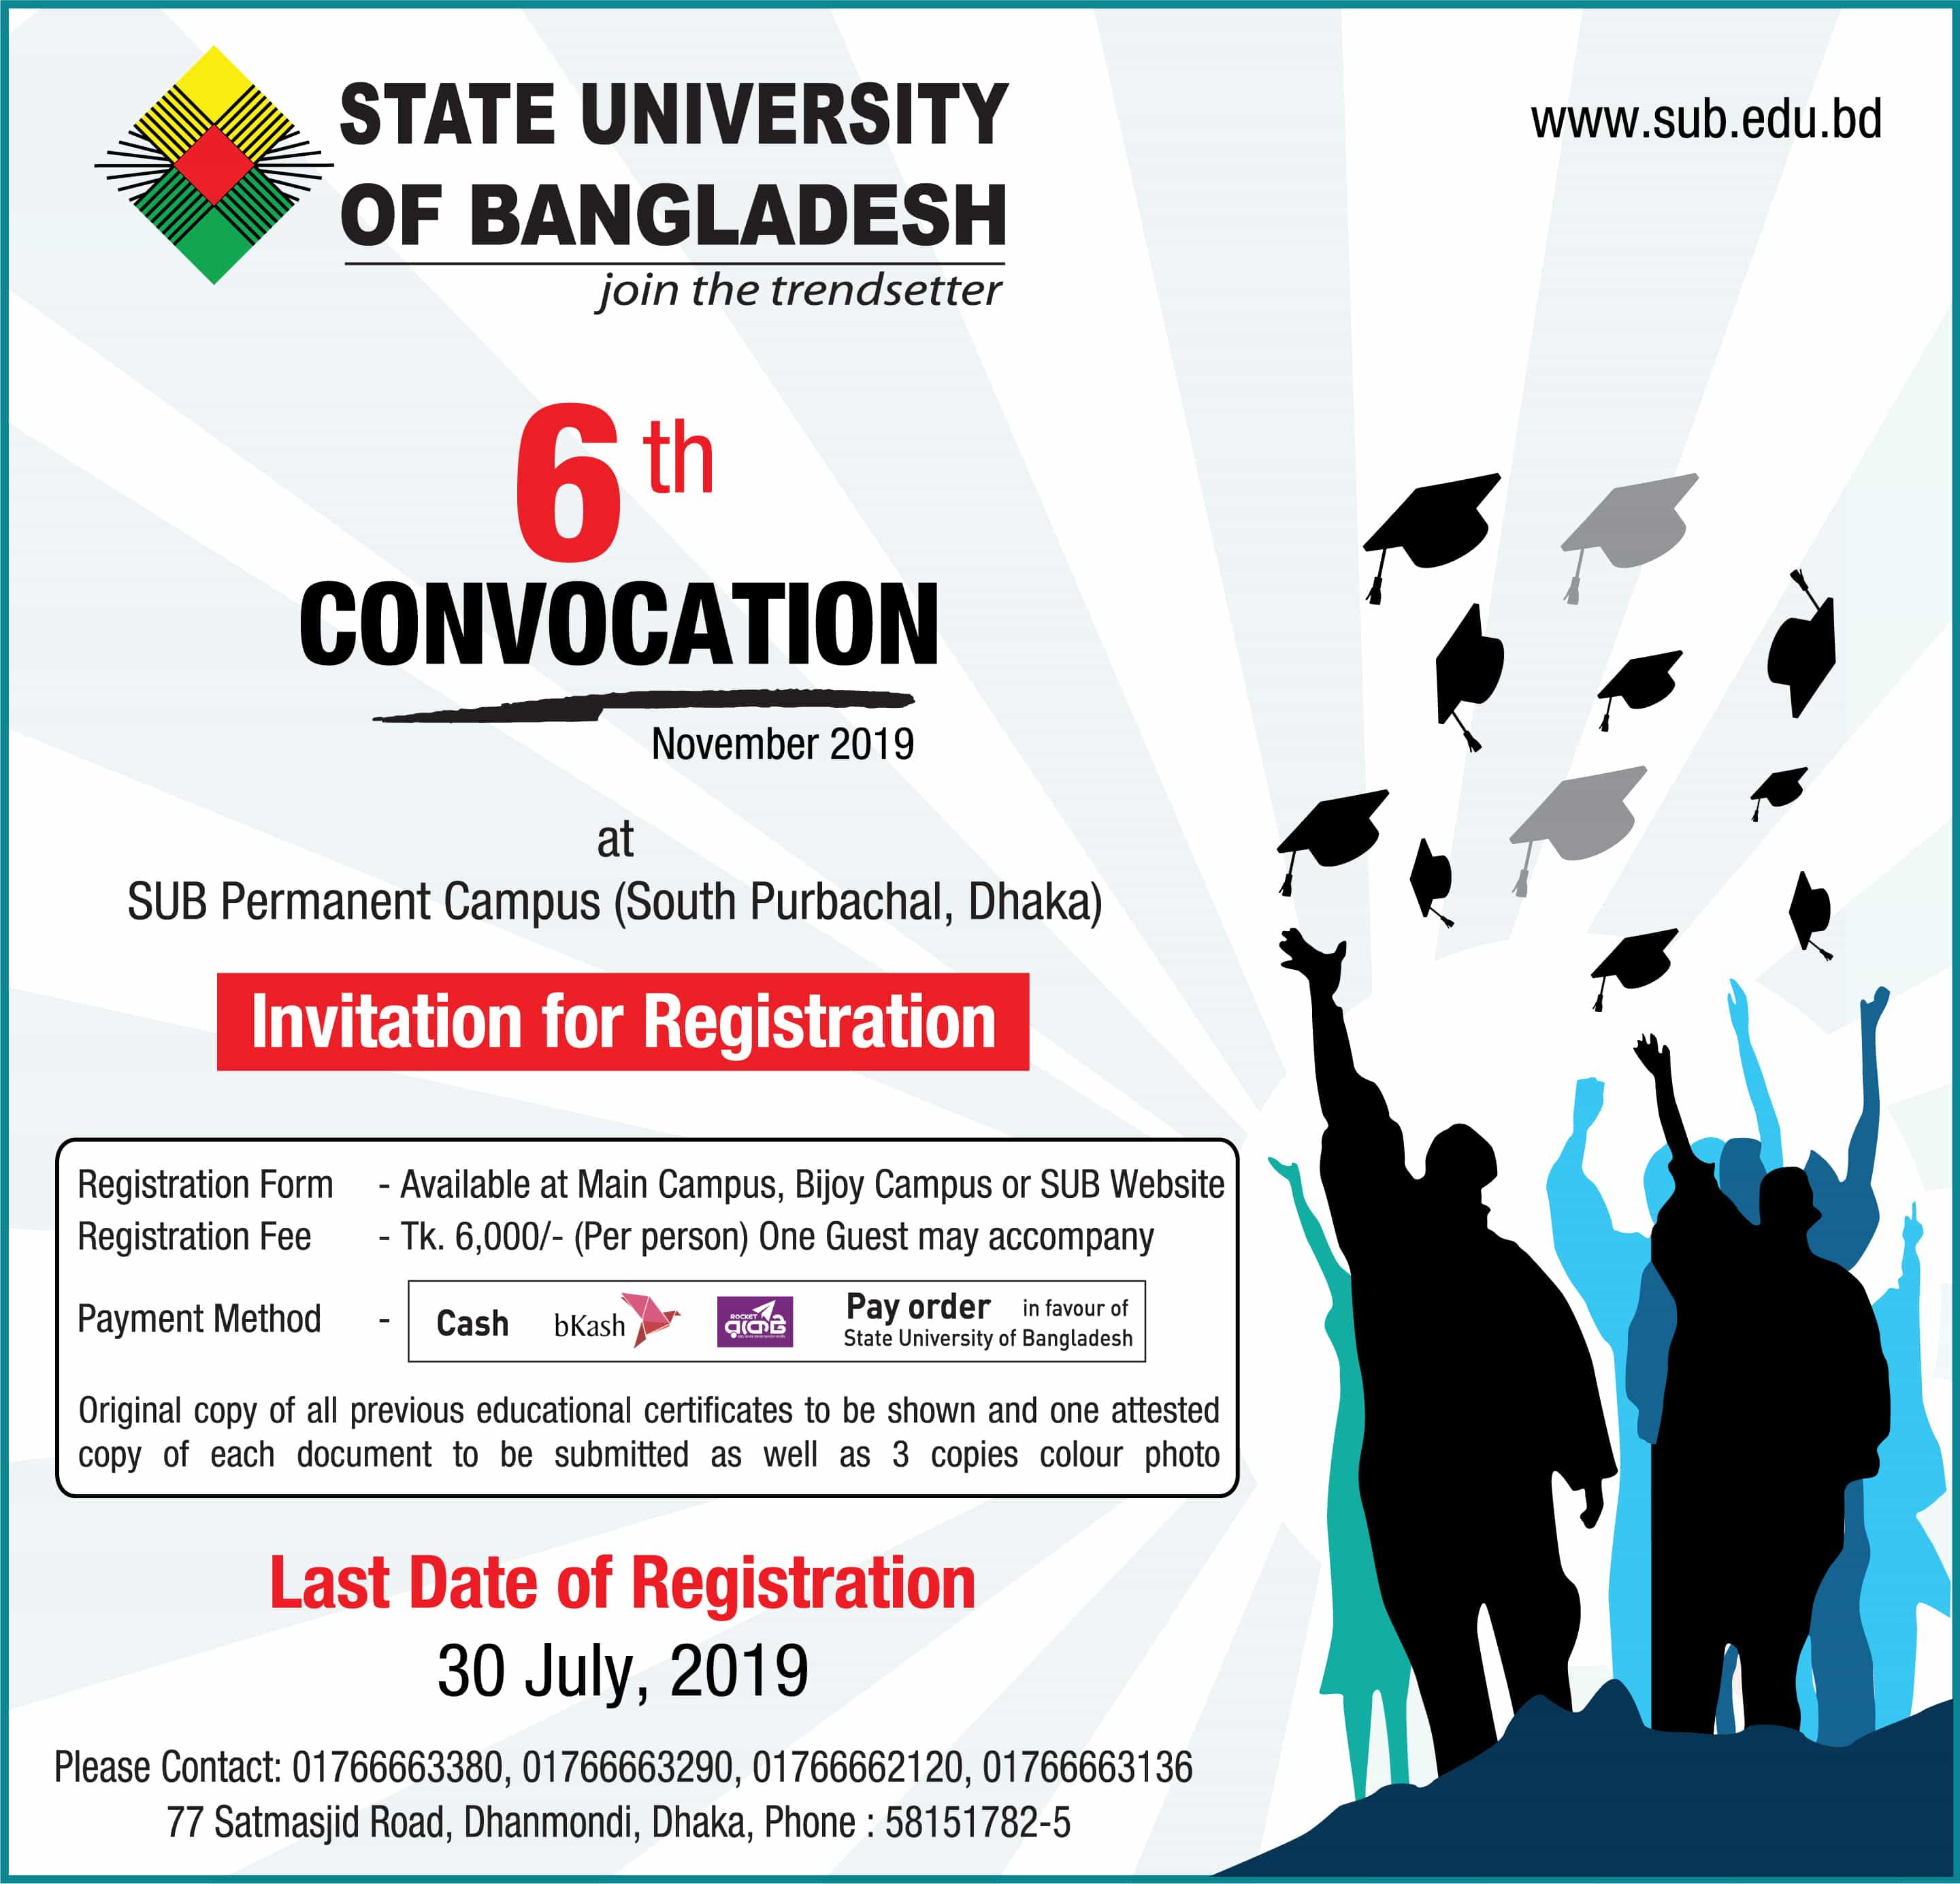 Welcome to State University of Bangladesh | State University of